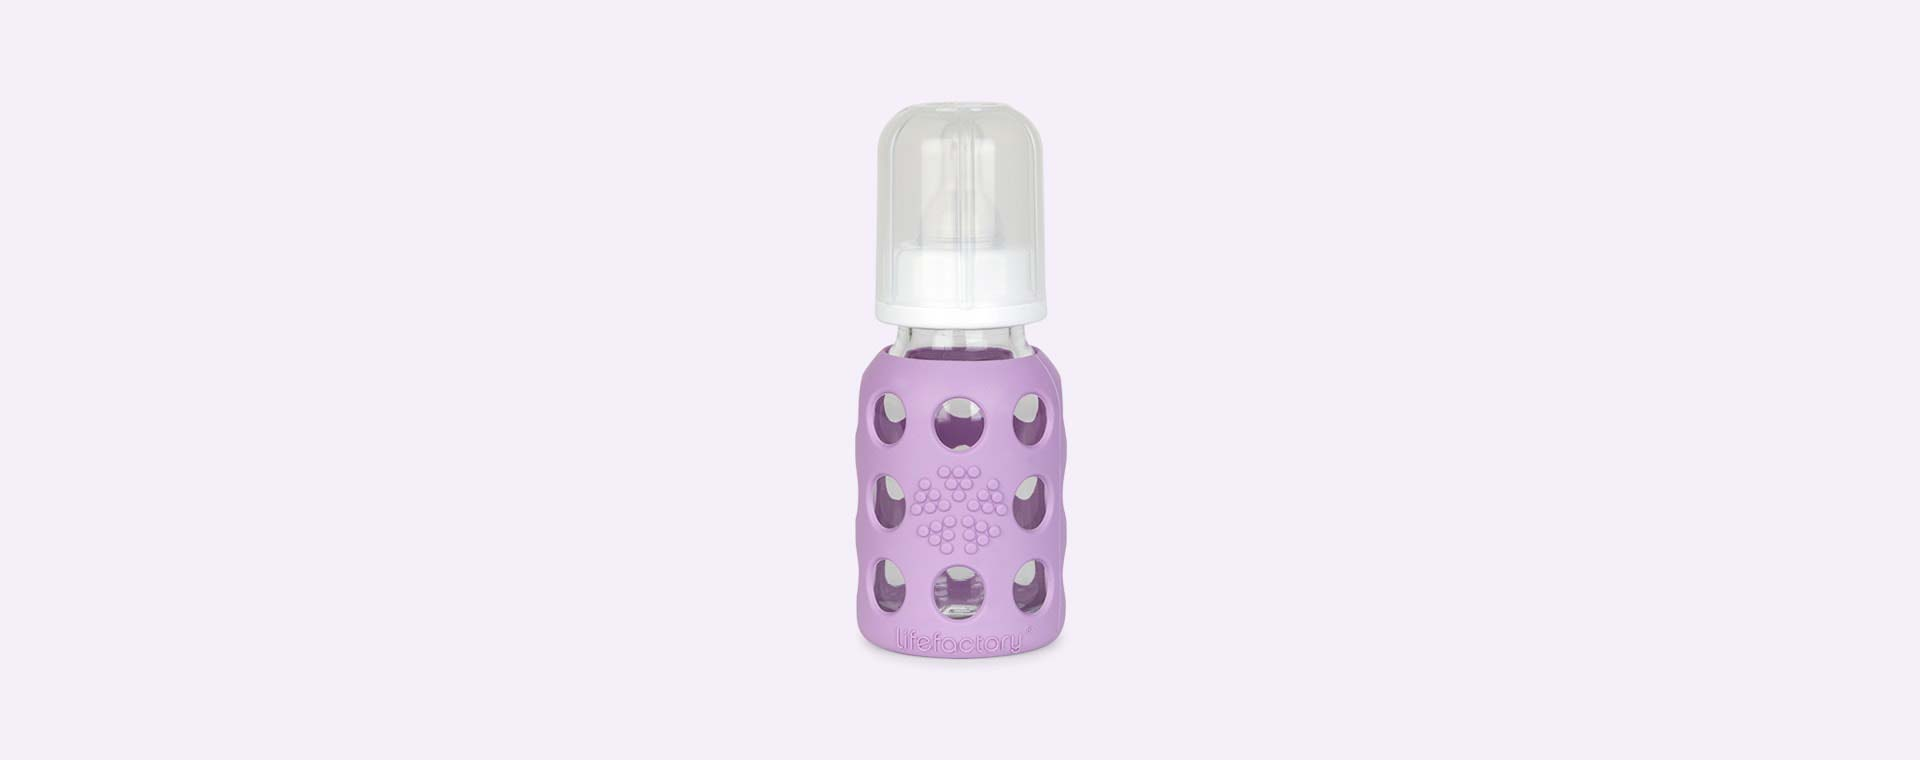 Lavender Lifefactory 4oz Glass Baby Bottle